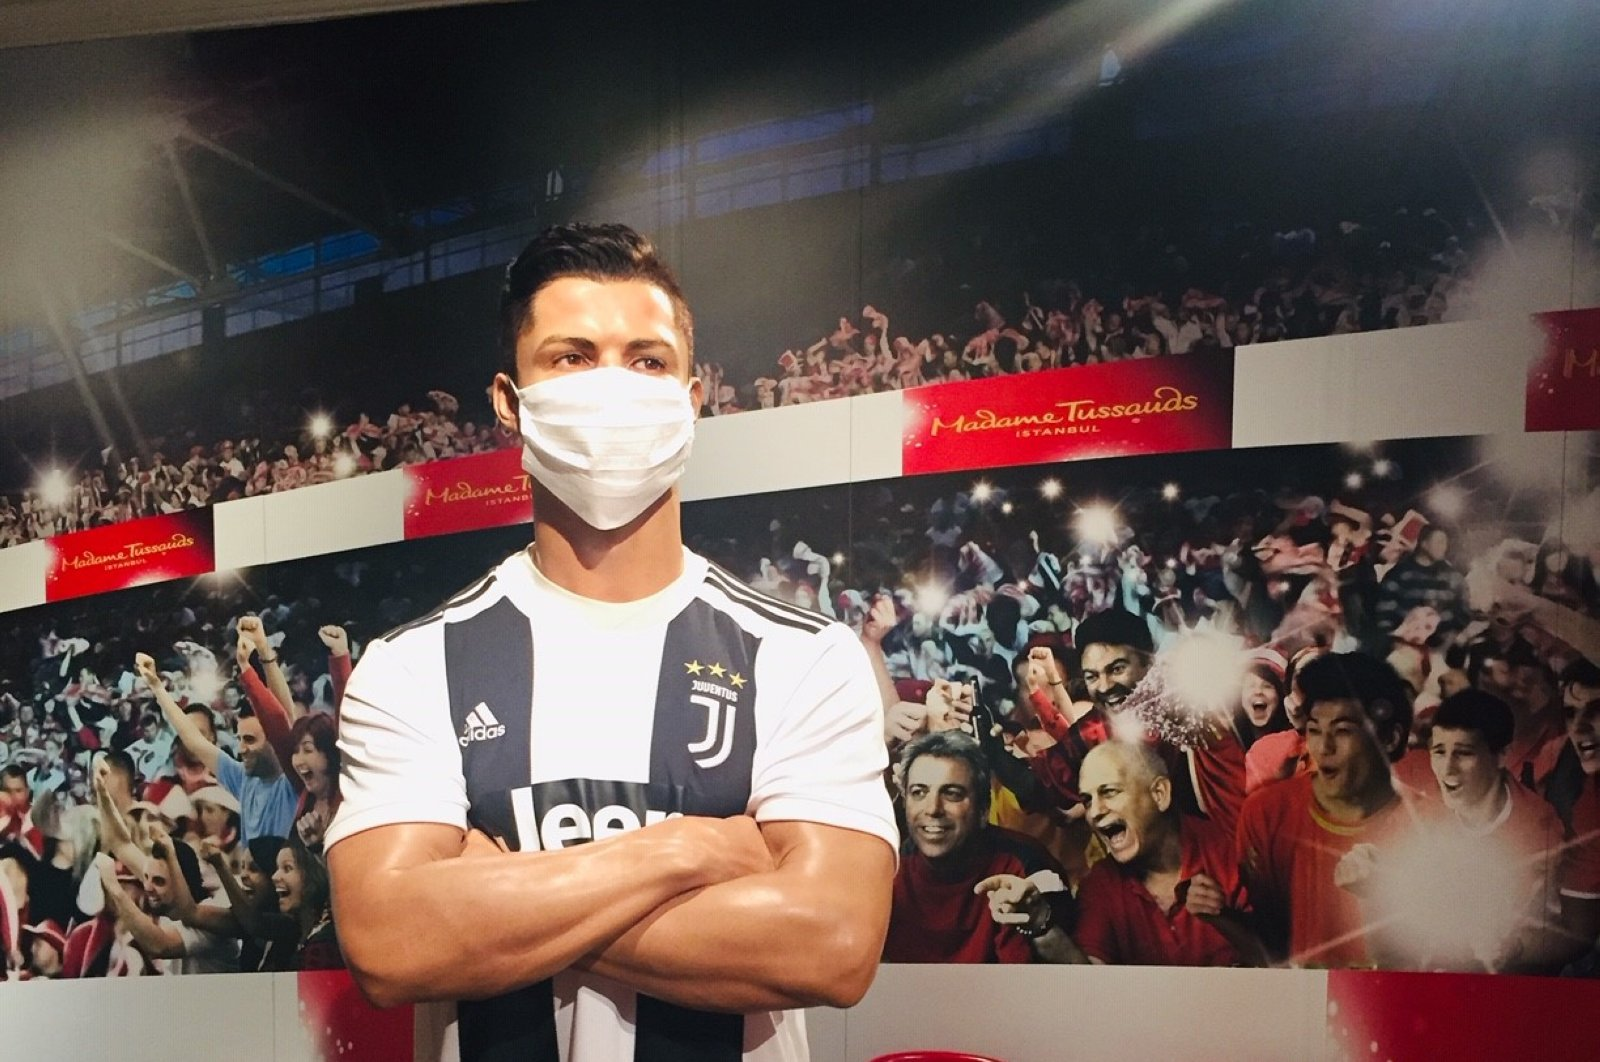 Cristiano Ronaldo's wax figure is seen wearing a mask in this photo in Istanbul, Turkey, July 8, 2020. (AA Photo)